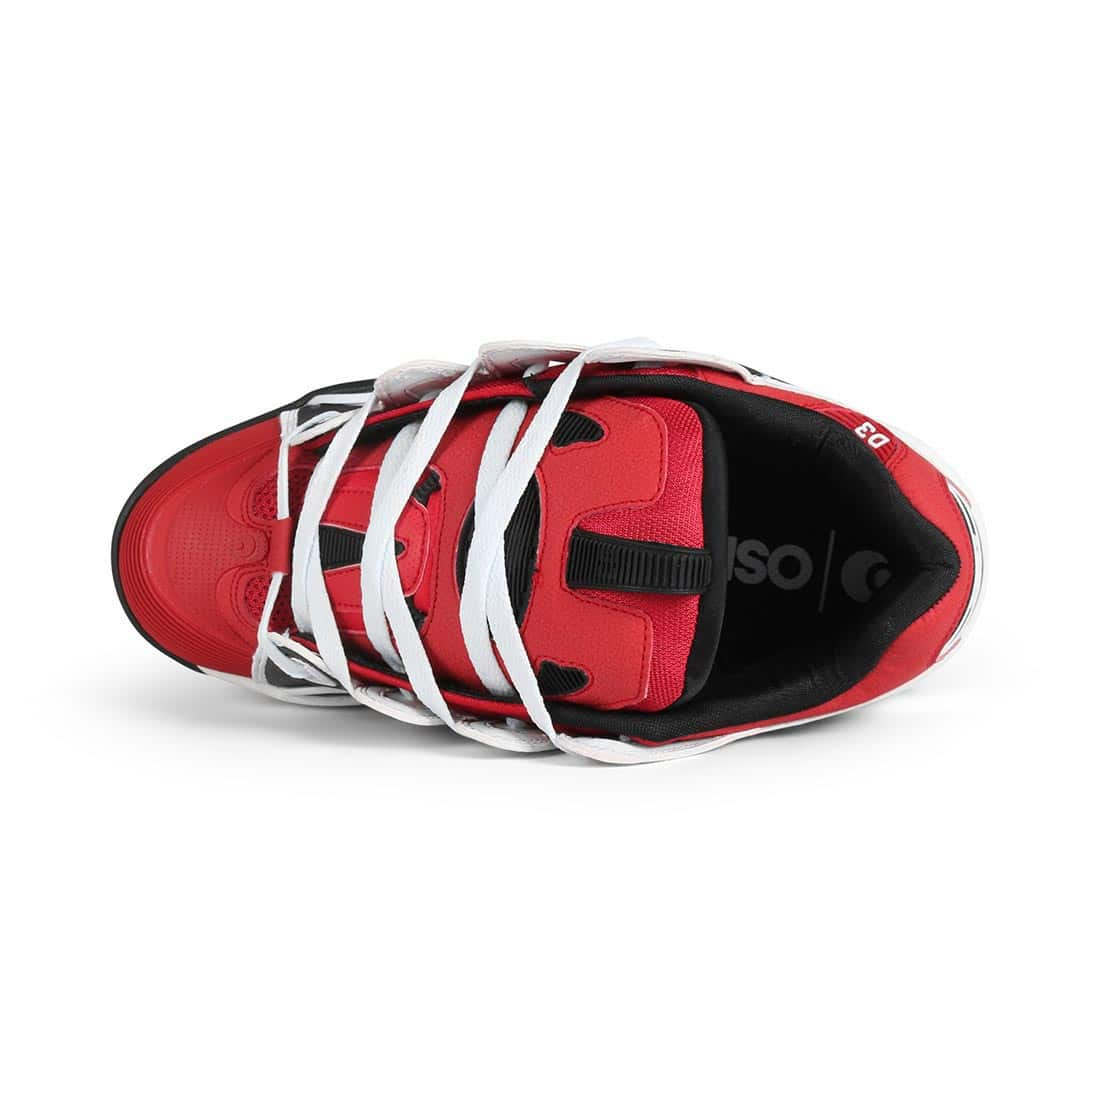 Osiris D3 2001 Shoes - Red / Black / White